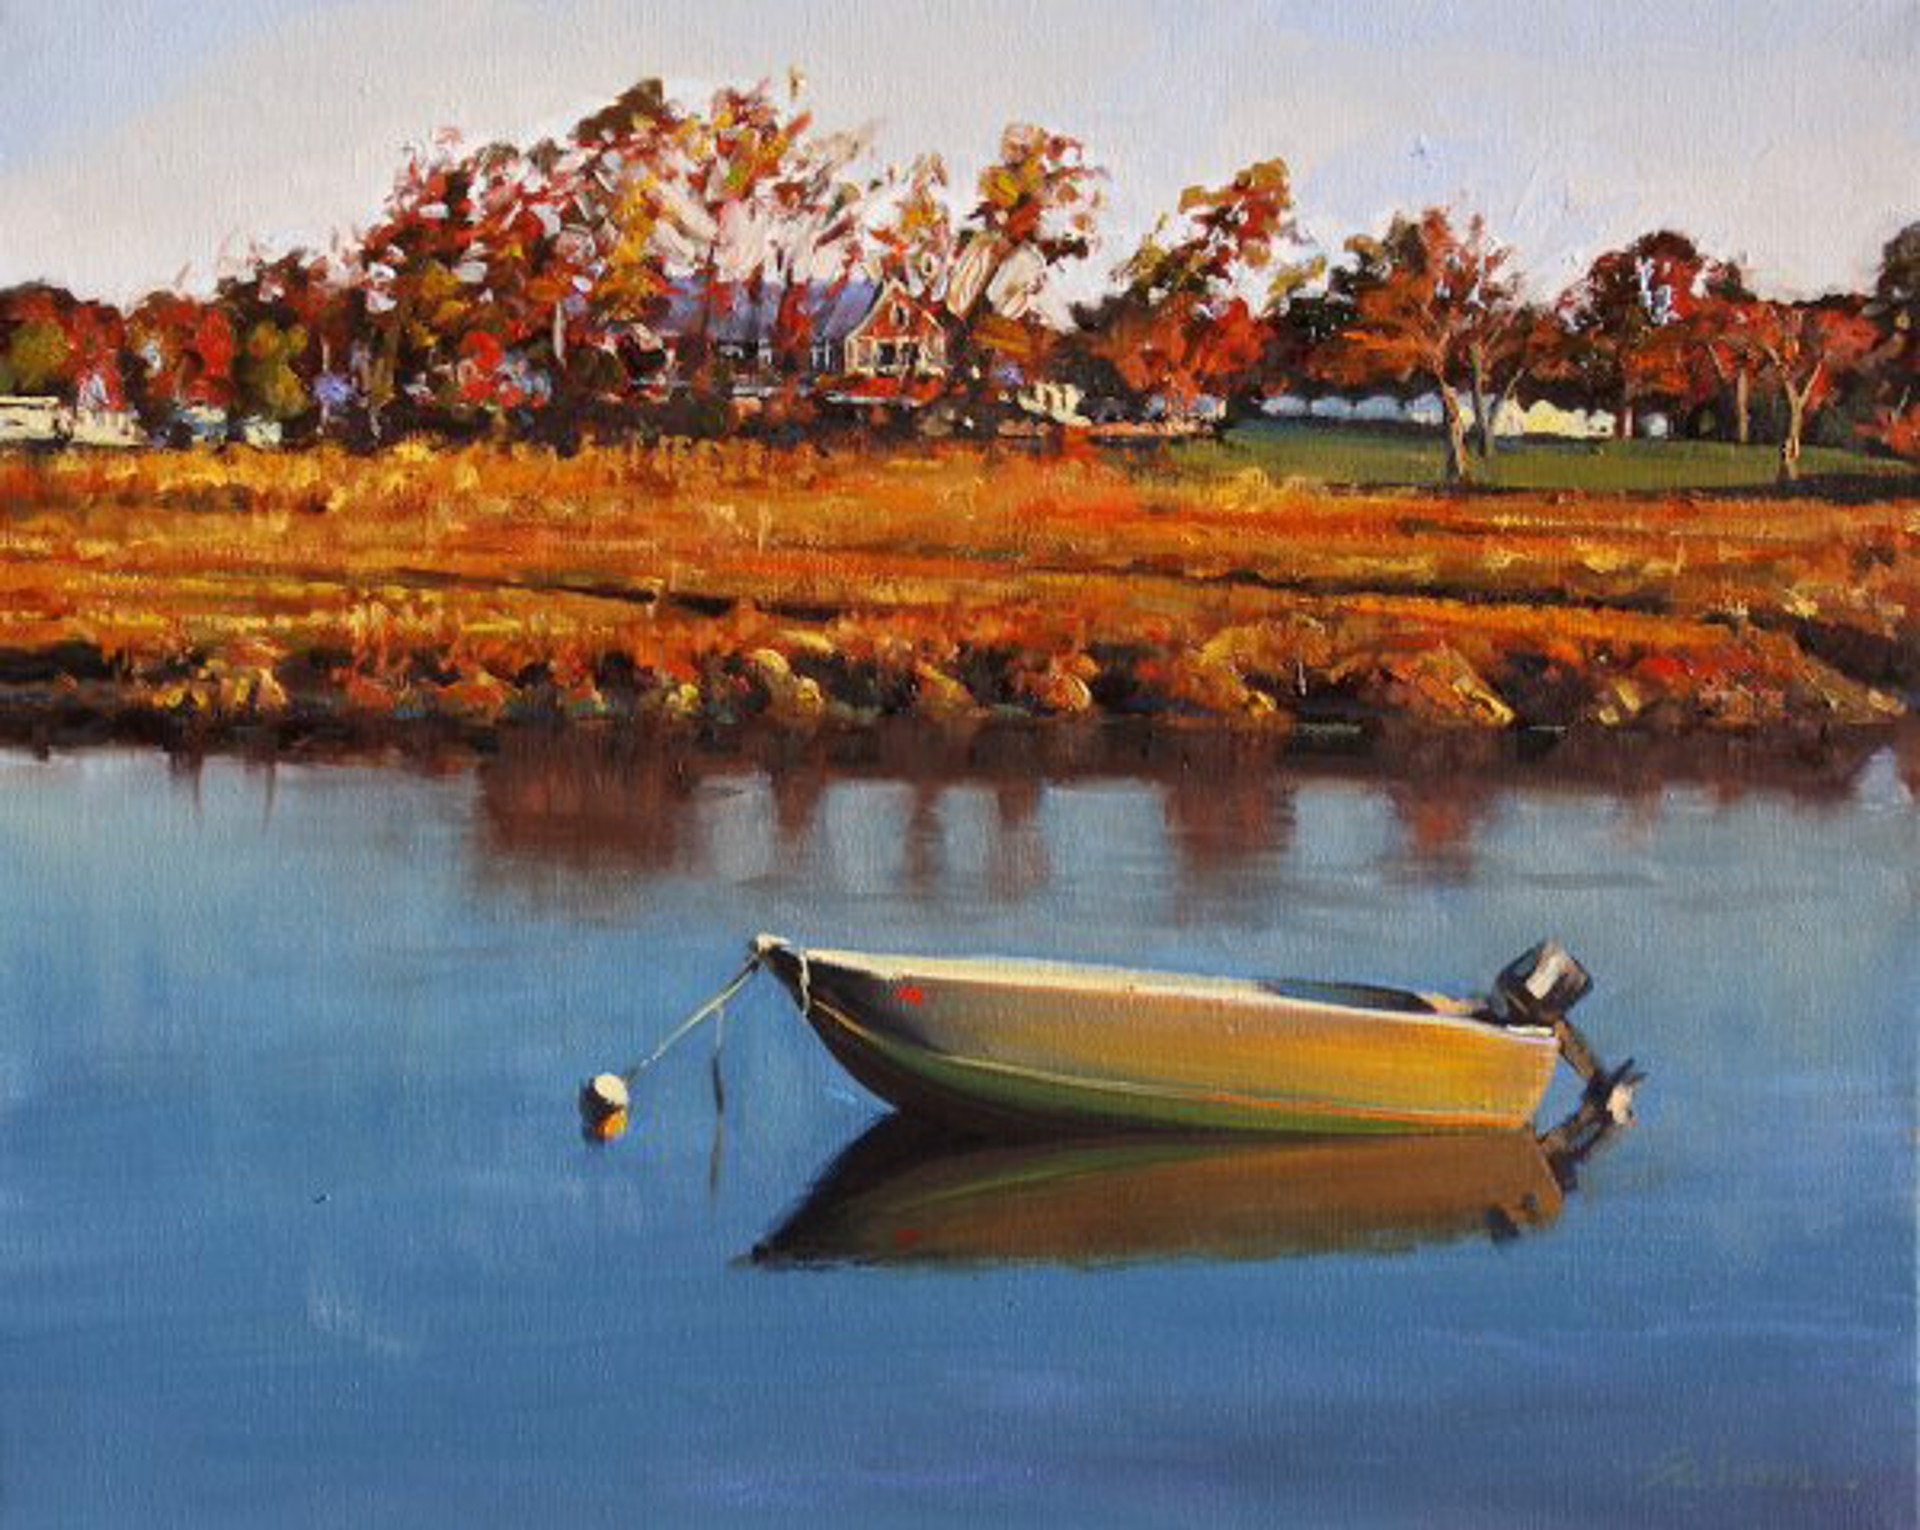 Tom Swimm: Essex River Reflections by Tom Swimm